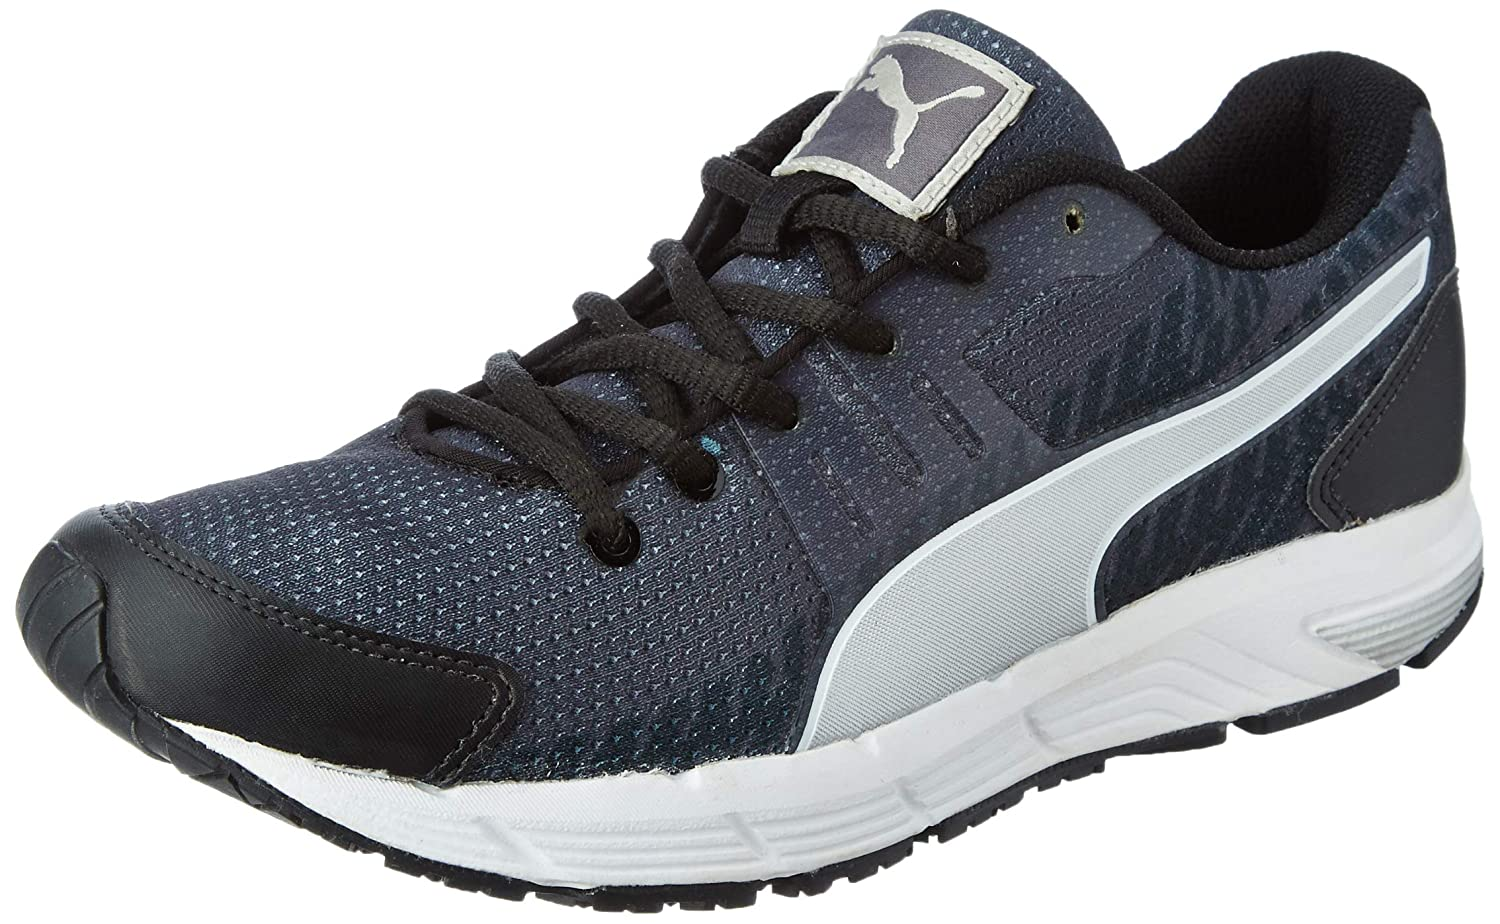 Puma Men s Sequence v2 IDP H2T Running Shoes  Buy Online at Low Prices in  India - Amazon.in 5070761a2